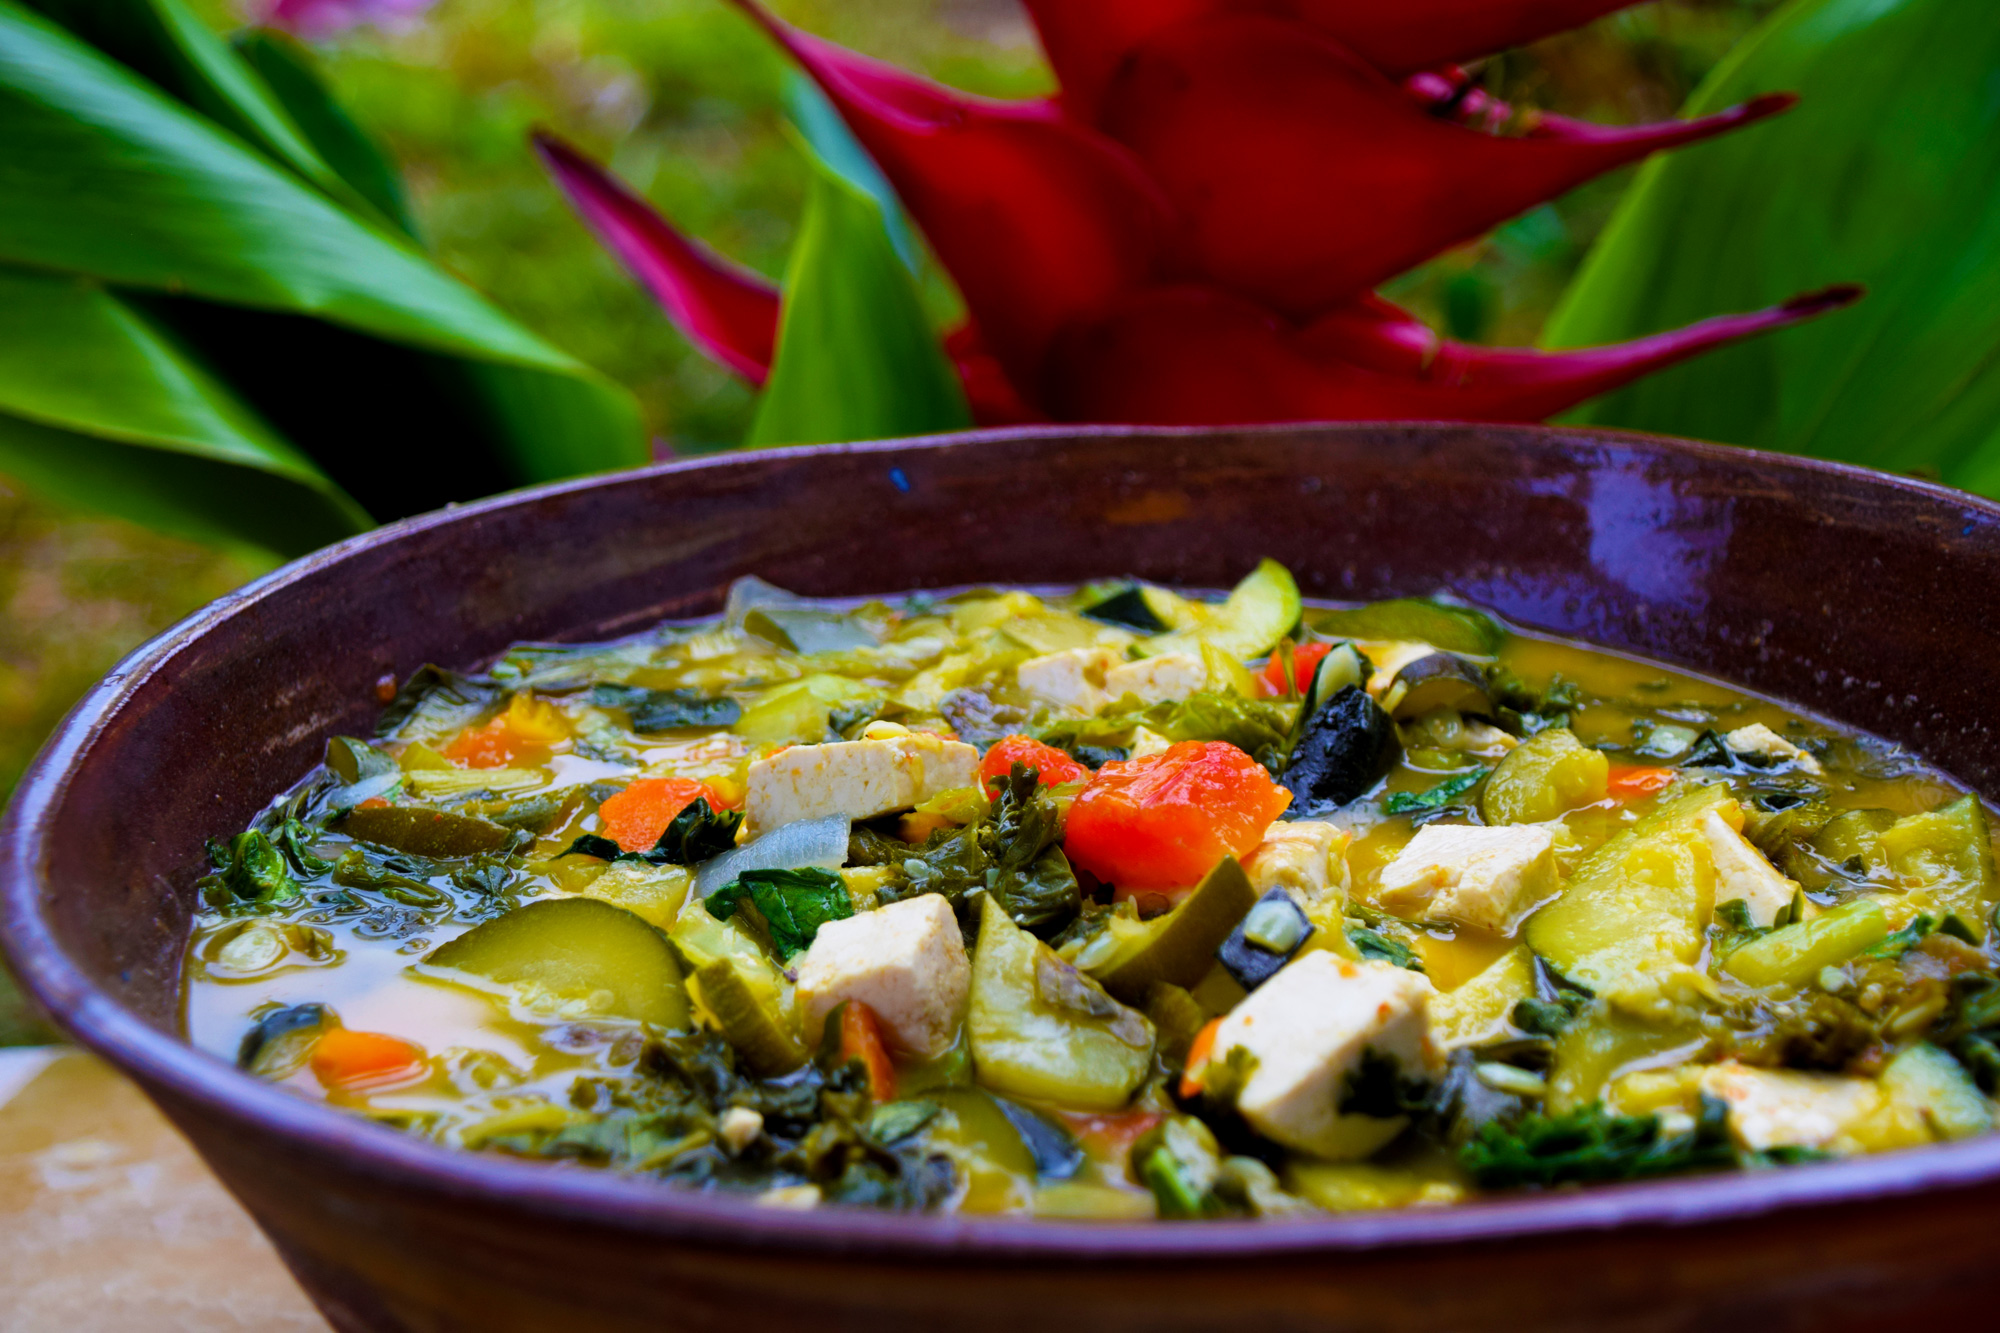 Gourmet Vegetarian Farm to Table Dining at Ahimsa Sanctuary Farm, Maui